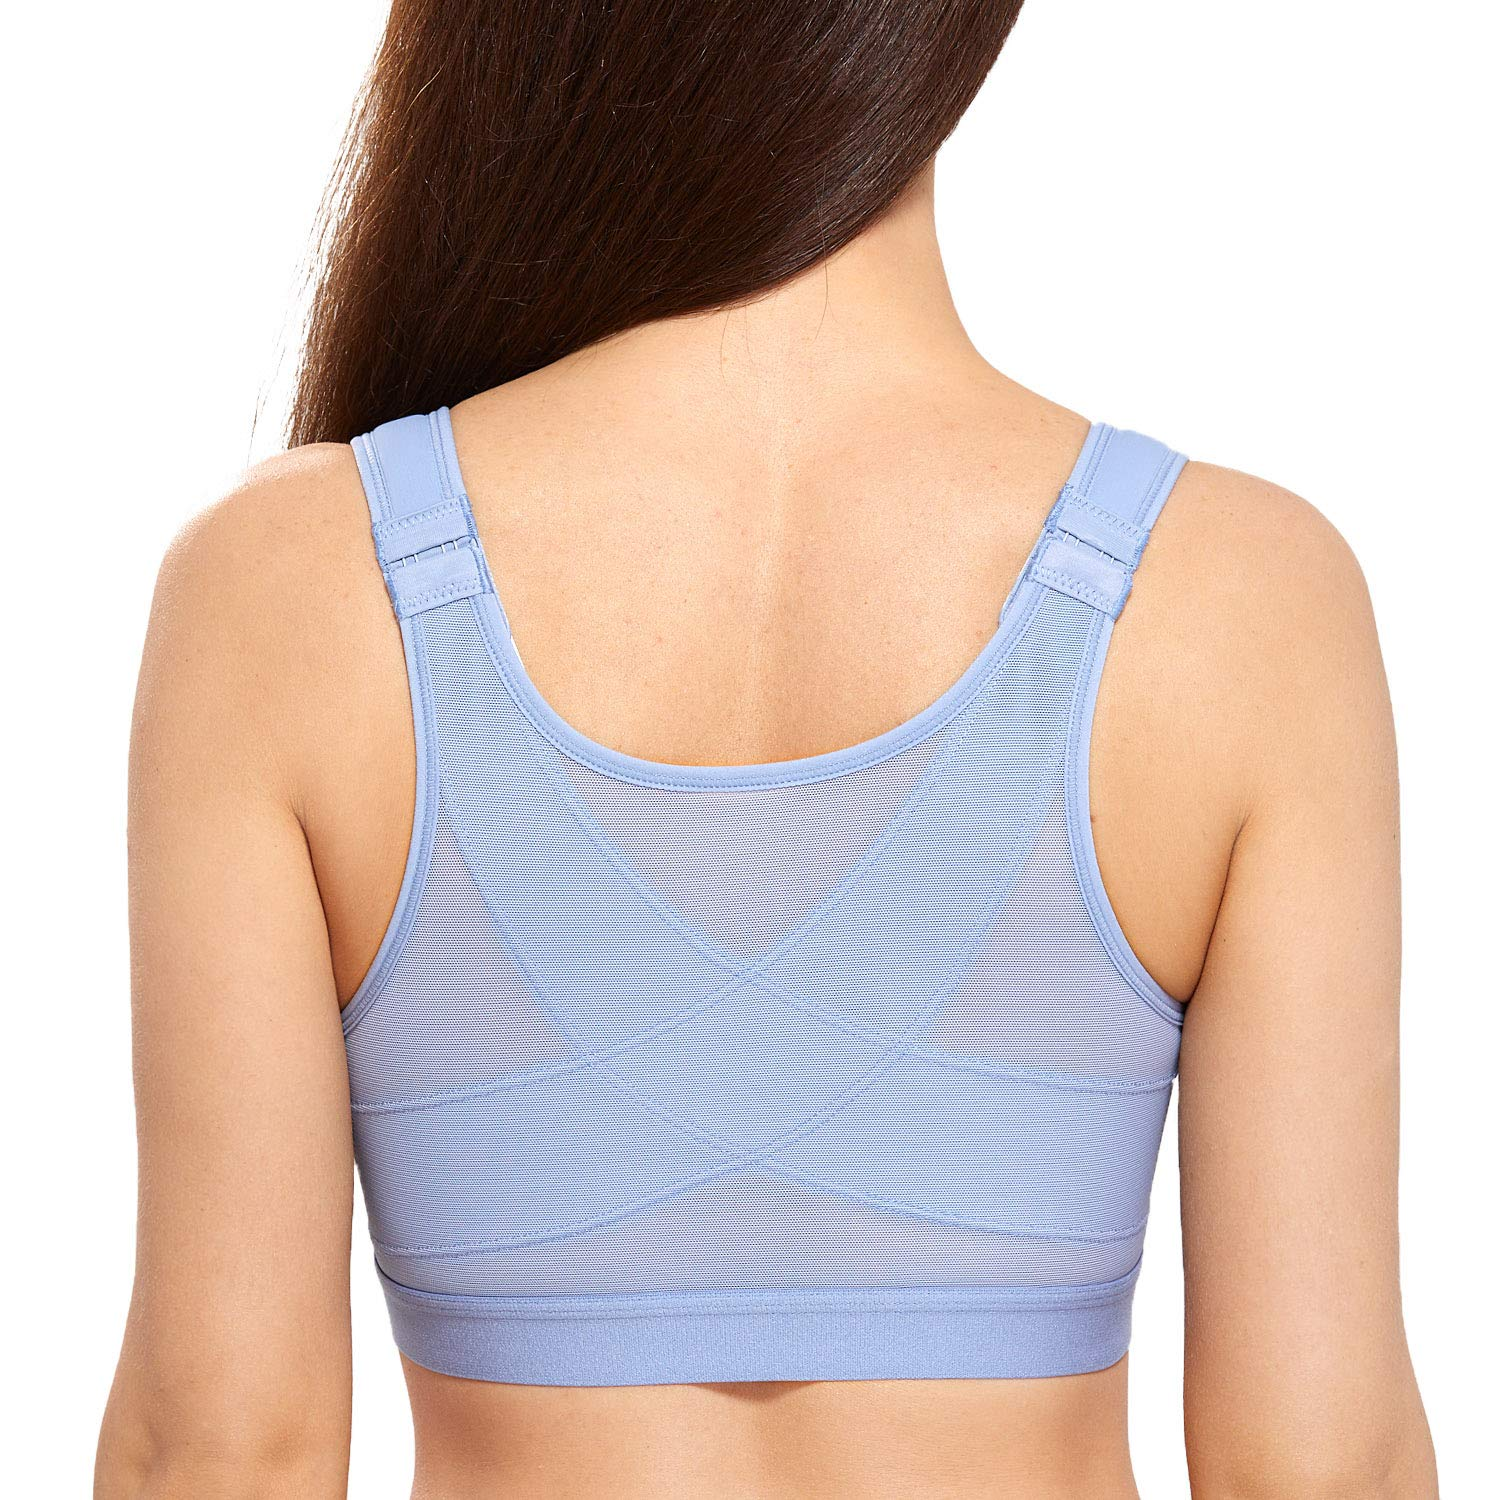 DELIMIRA Women's Full Coverage Front Closure Wire Free Back Support Posture Bra Mystery Blue 42C by DELIMIRA